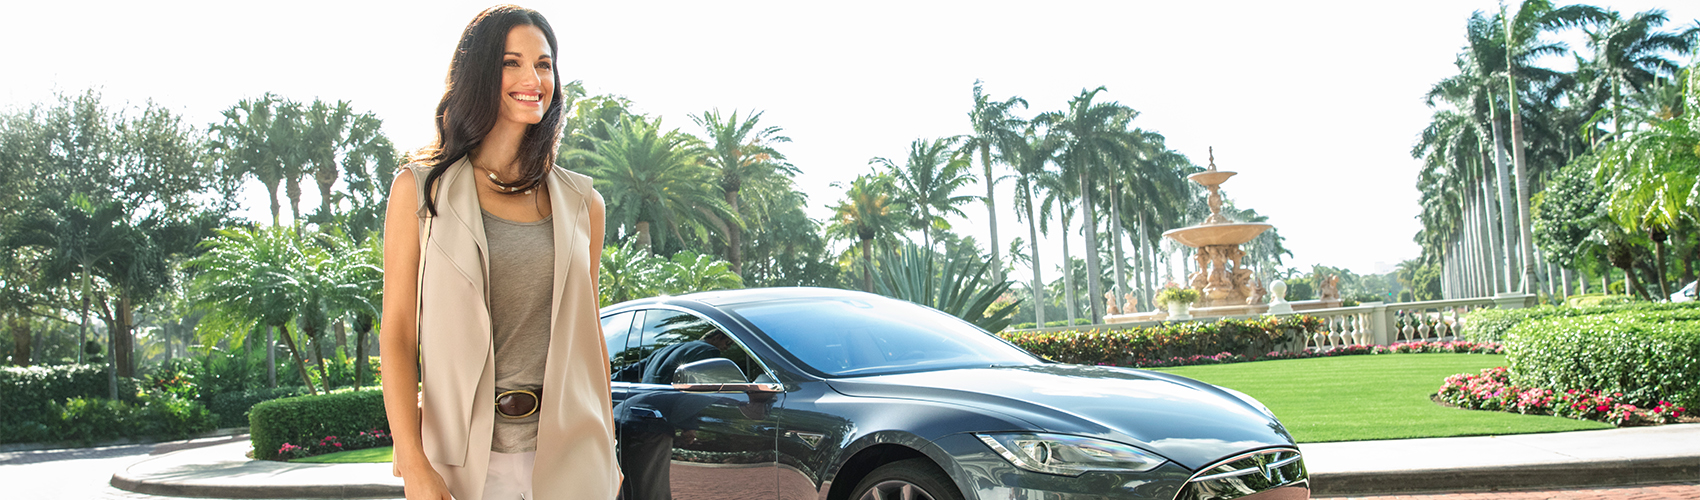 A guest arrives at The Breakers in Flagler Club's chauffeured Tesla house car